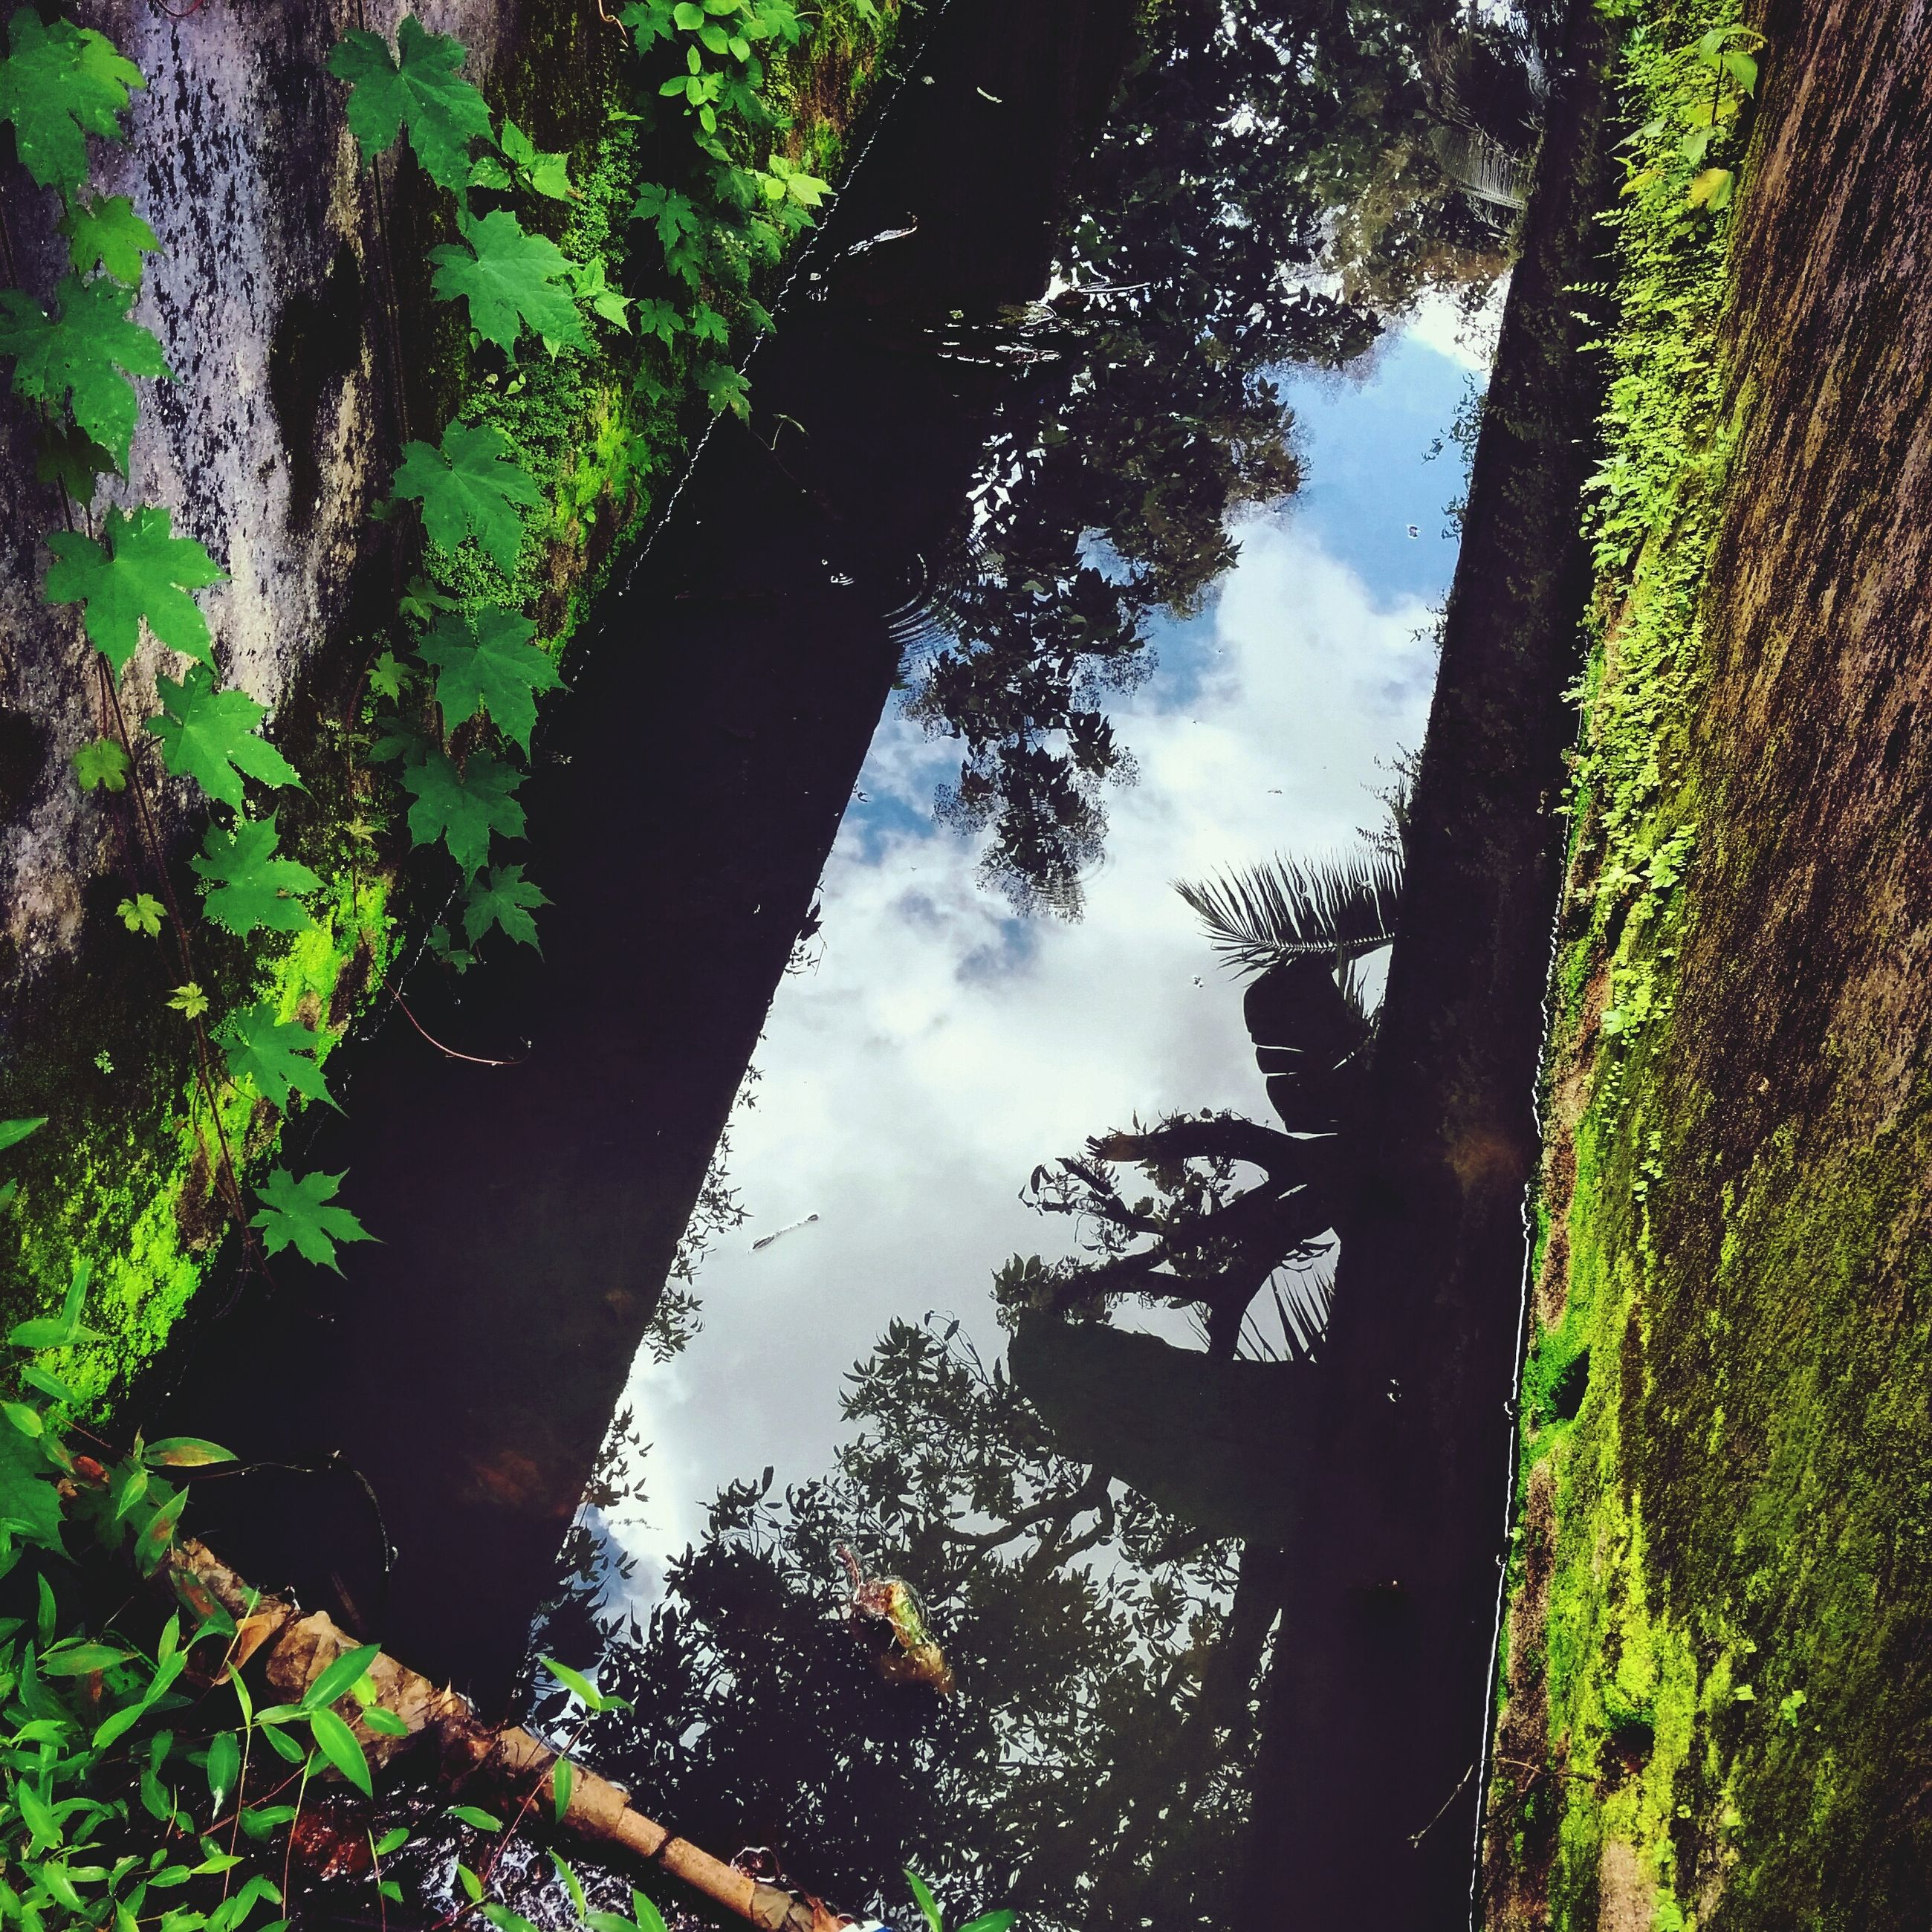 tree, growth, tranquility, tree trunk, sky, nature, tranquil scene, green color, branch, reflection, forest, beauty in nature, low angle view, scenics, water, day, outdoors, sunlight, no people, lush foliage